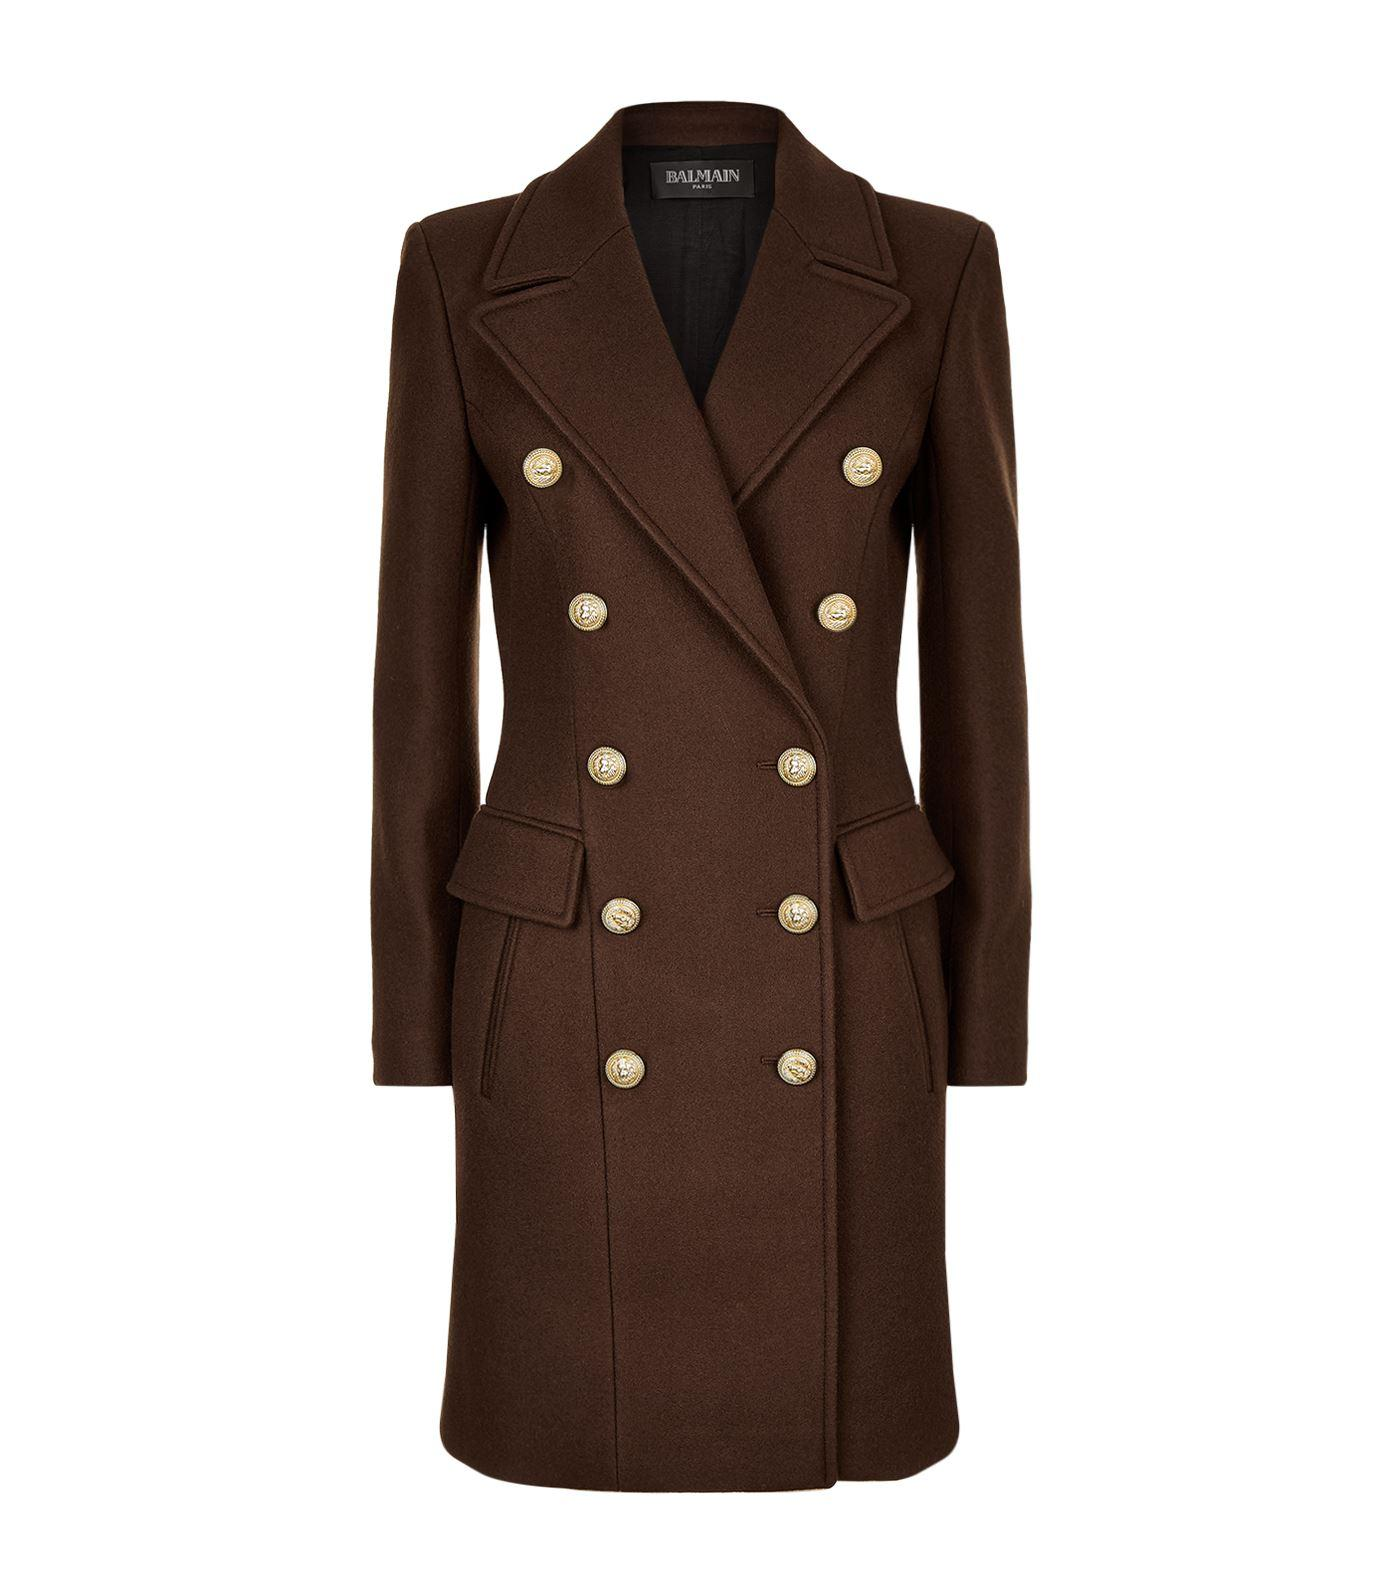 Balmain Double-breasted Coat, Brown, Fr 36